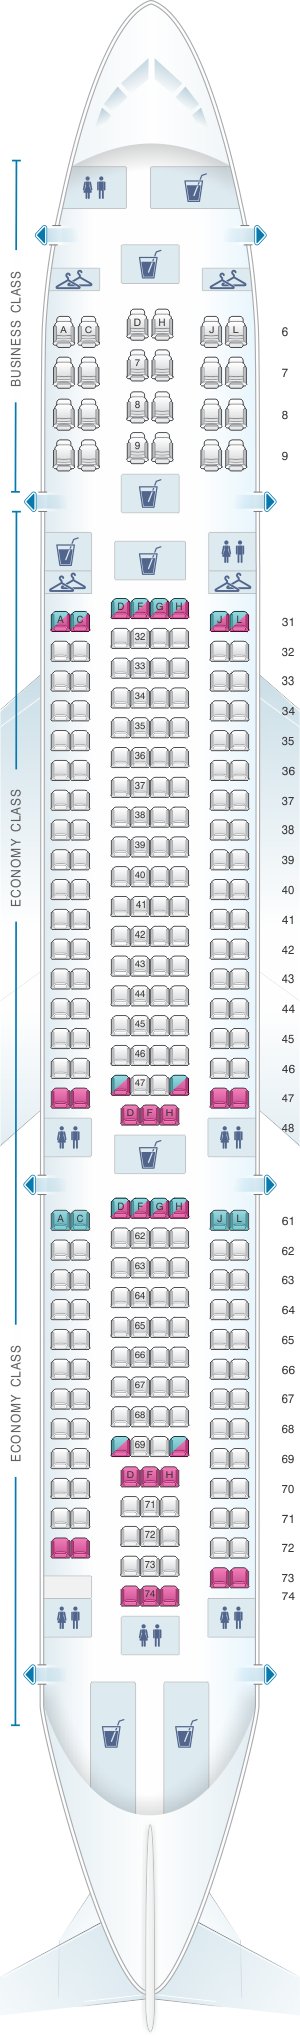 Seat map for China Eastern Airlines Airbus A330 200 264PAX